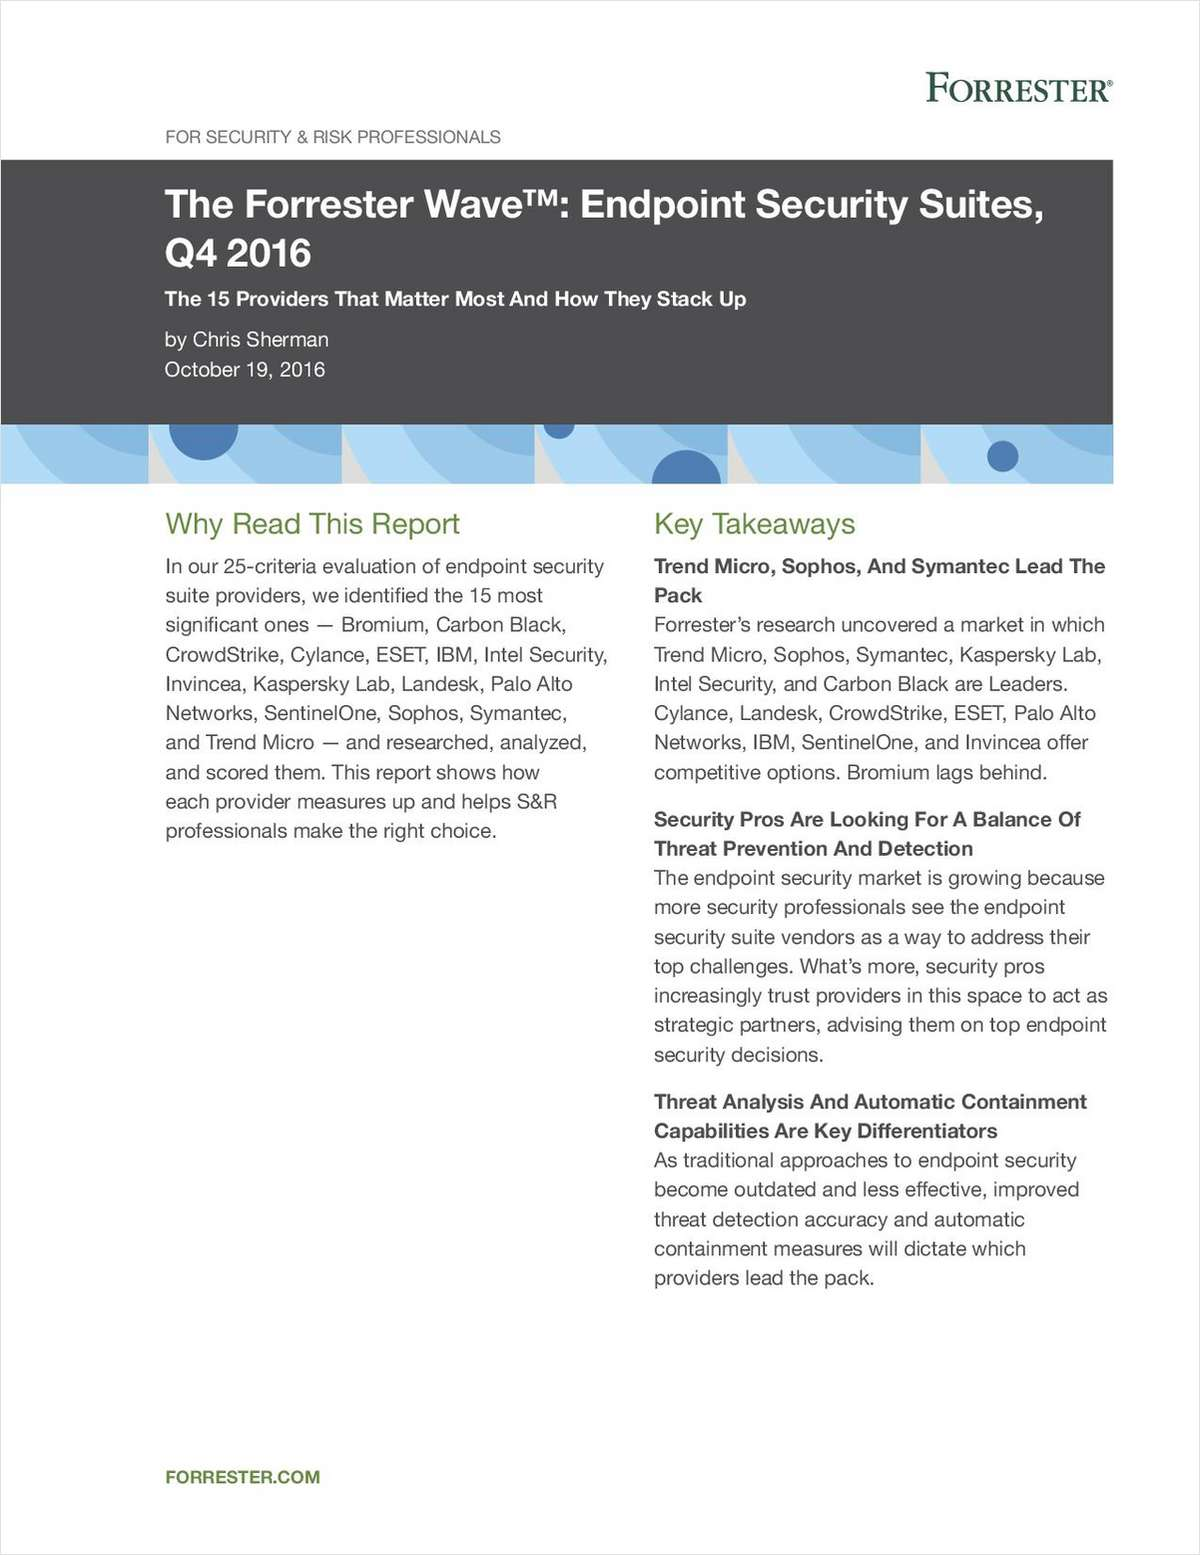 The Forrester Wave™: Endpoint Security Suites, Q4 2016